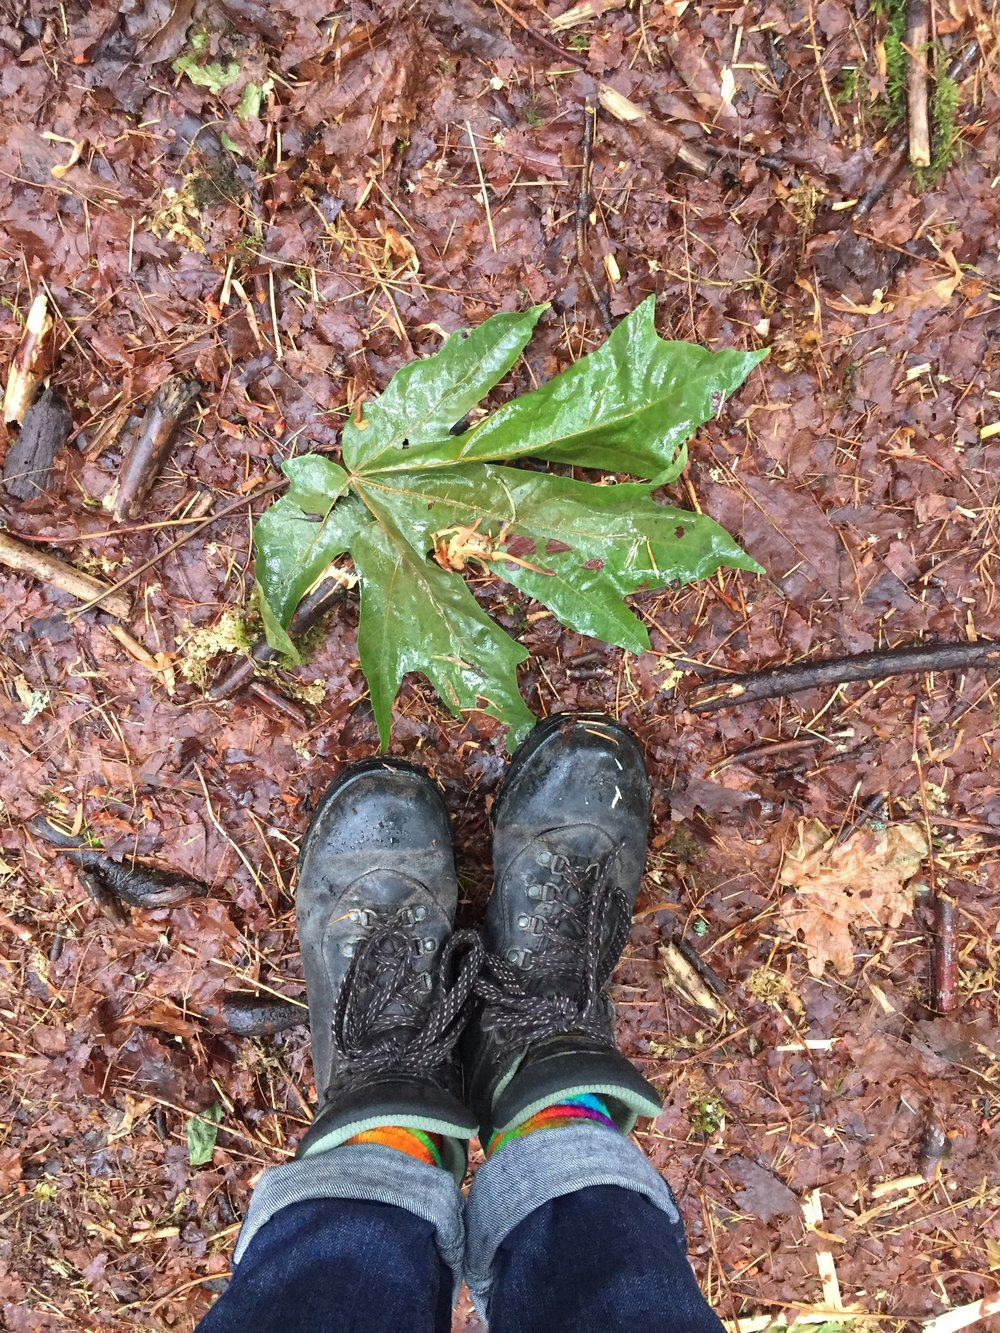 """David Tracey aptly describes the bigleaf maple leaf as """"the Canadian flag's sugar maple on steroids."""" Feet for scale, as I'm a scientist."""